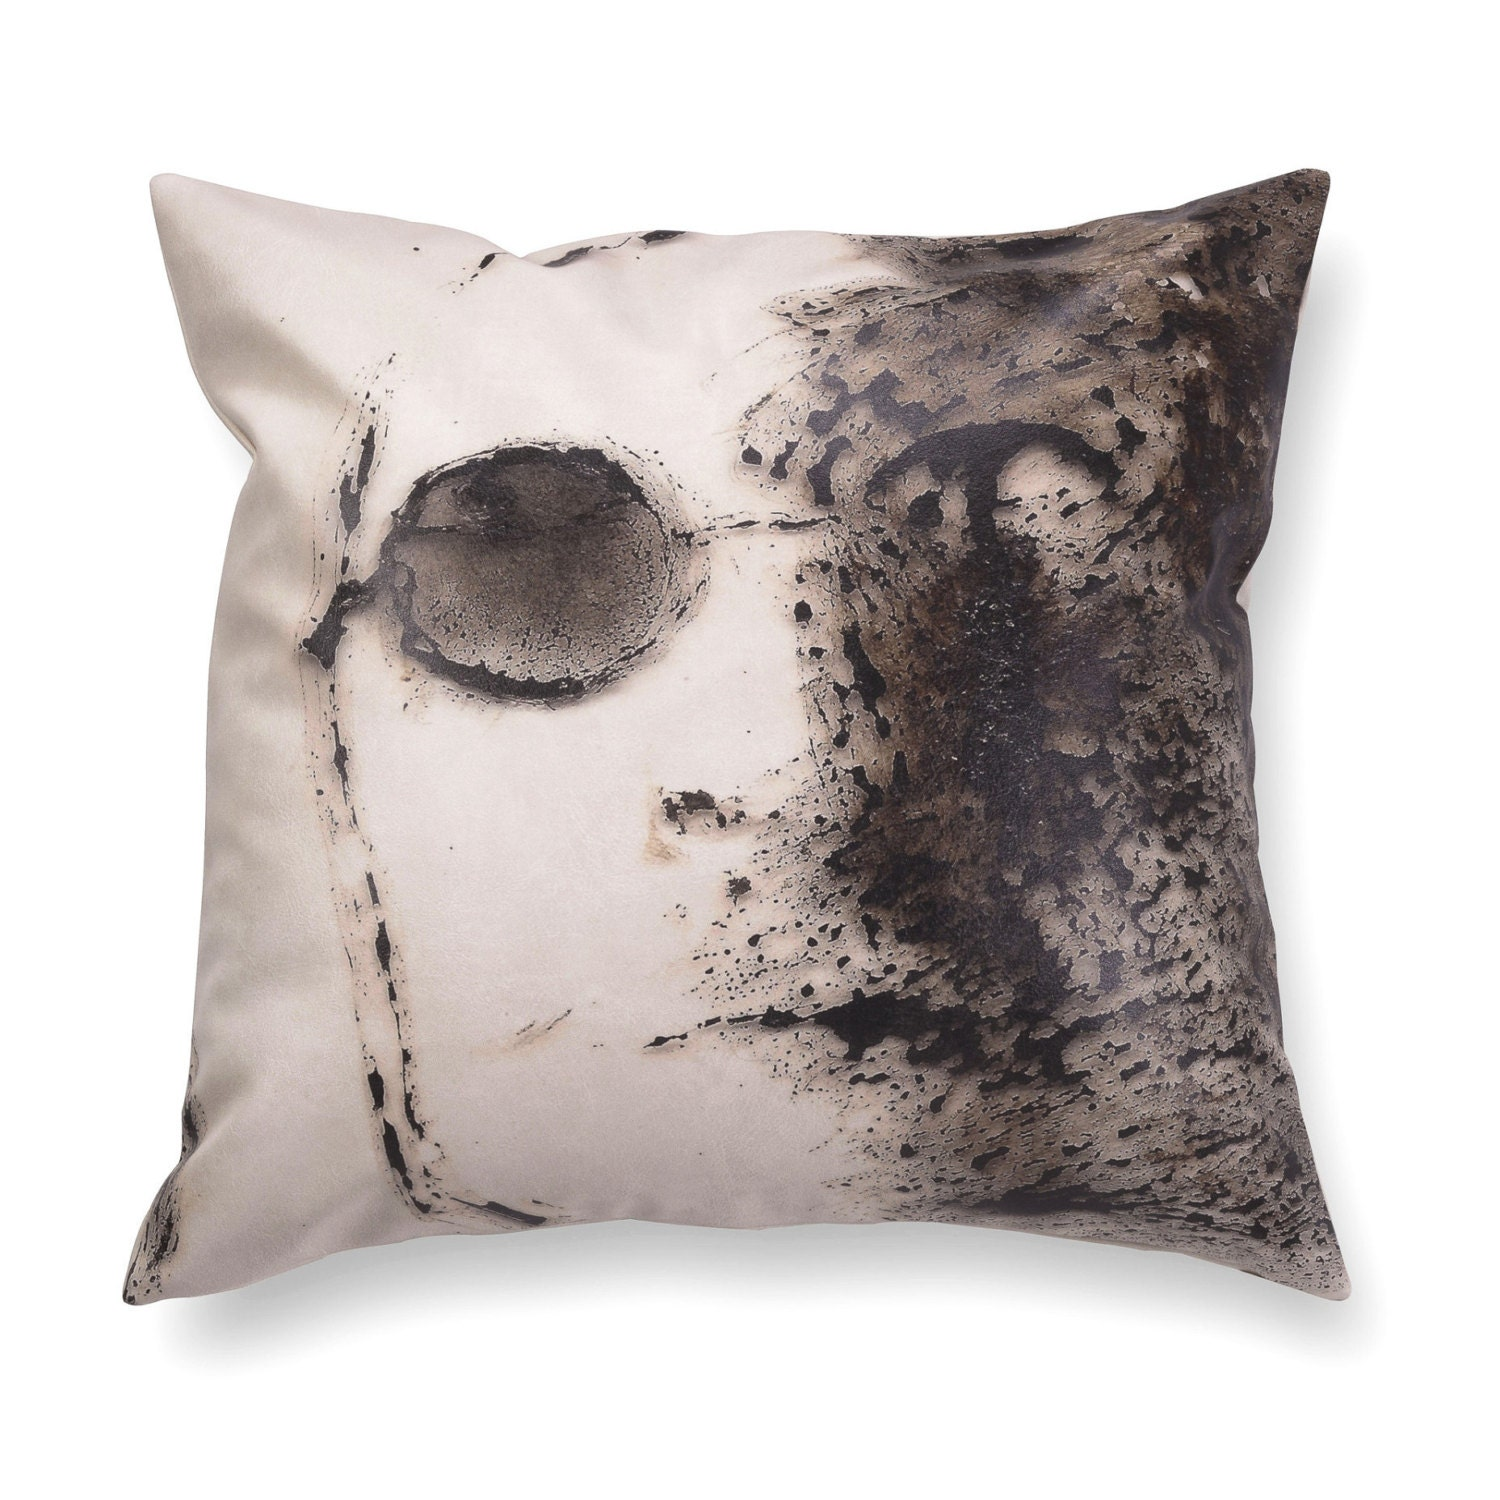 Decorative Pillows Leather : Decorative pillow black and white pillow. leather cushion